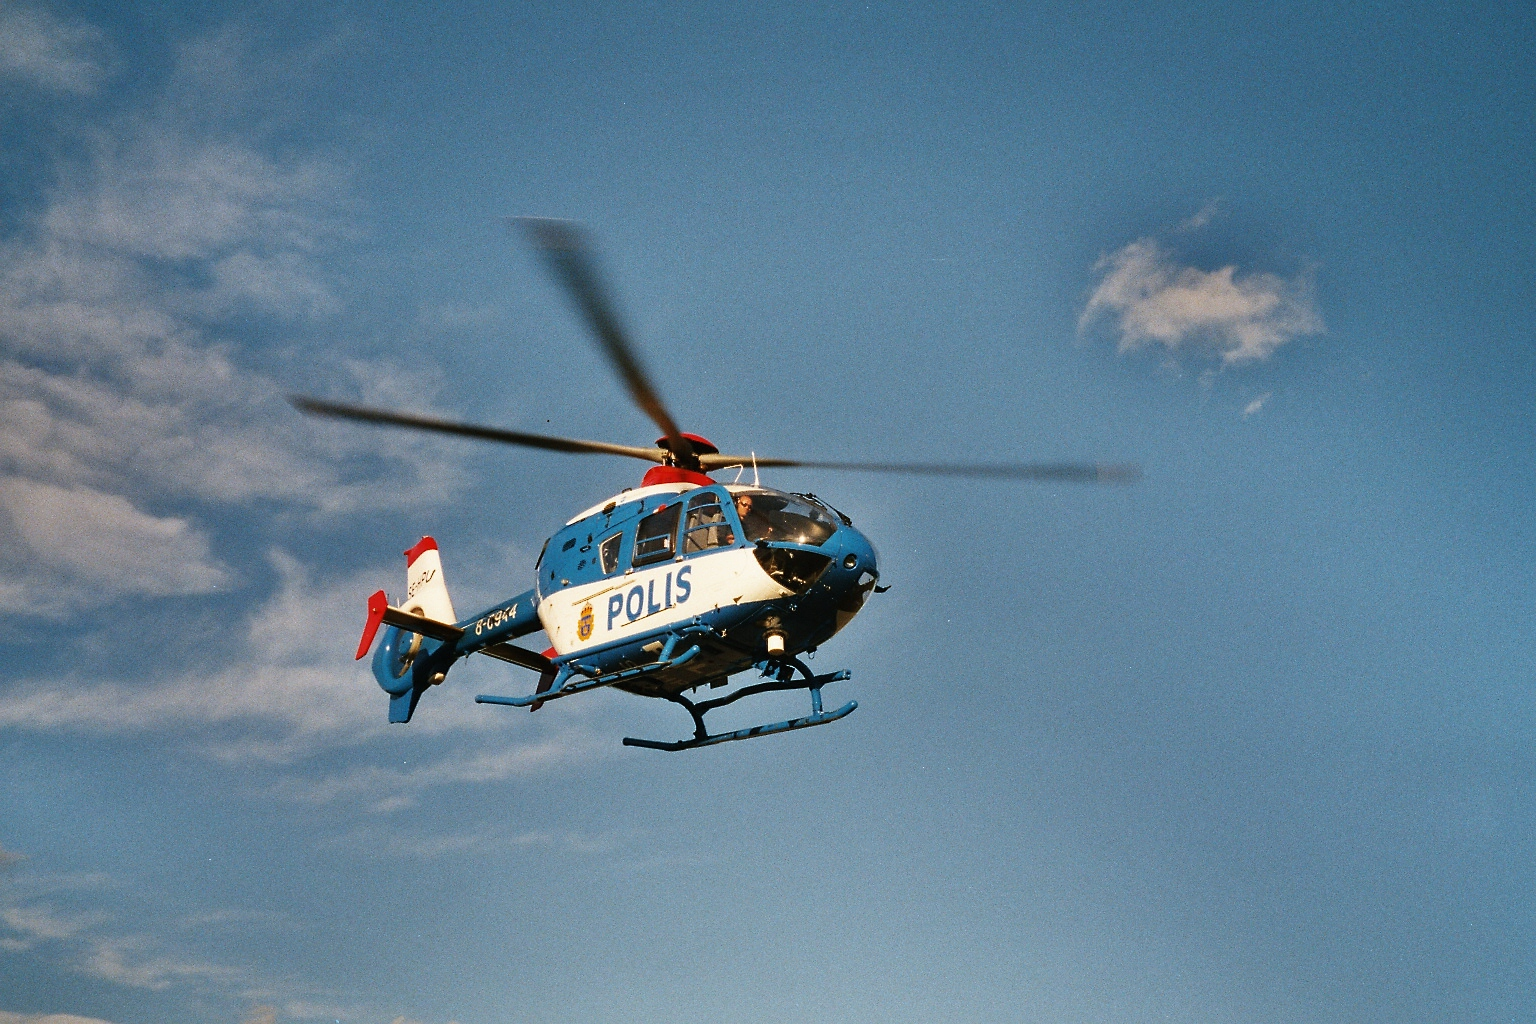 Police Helicopter picturesHelicopter Police Games